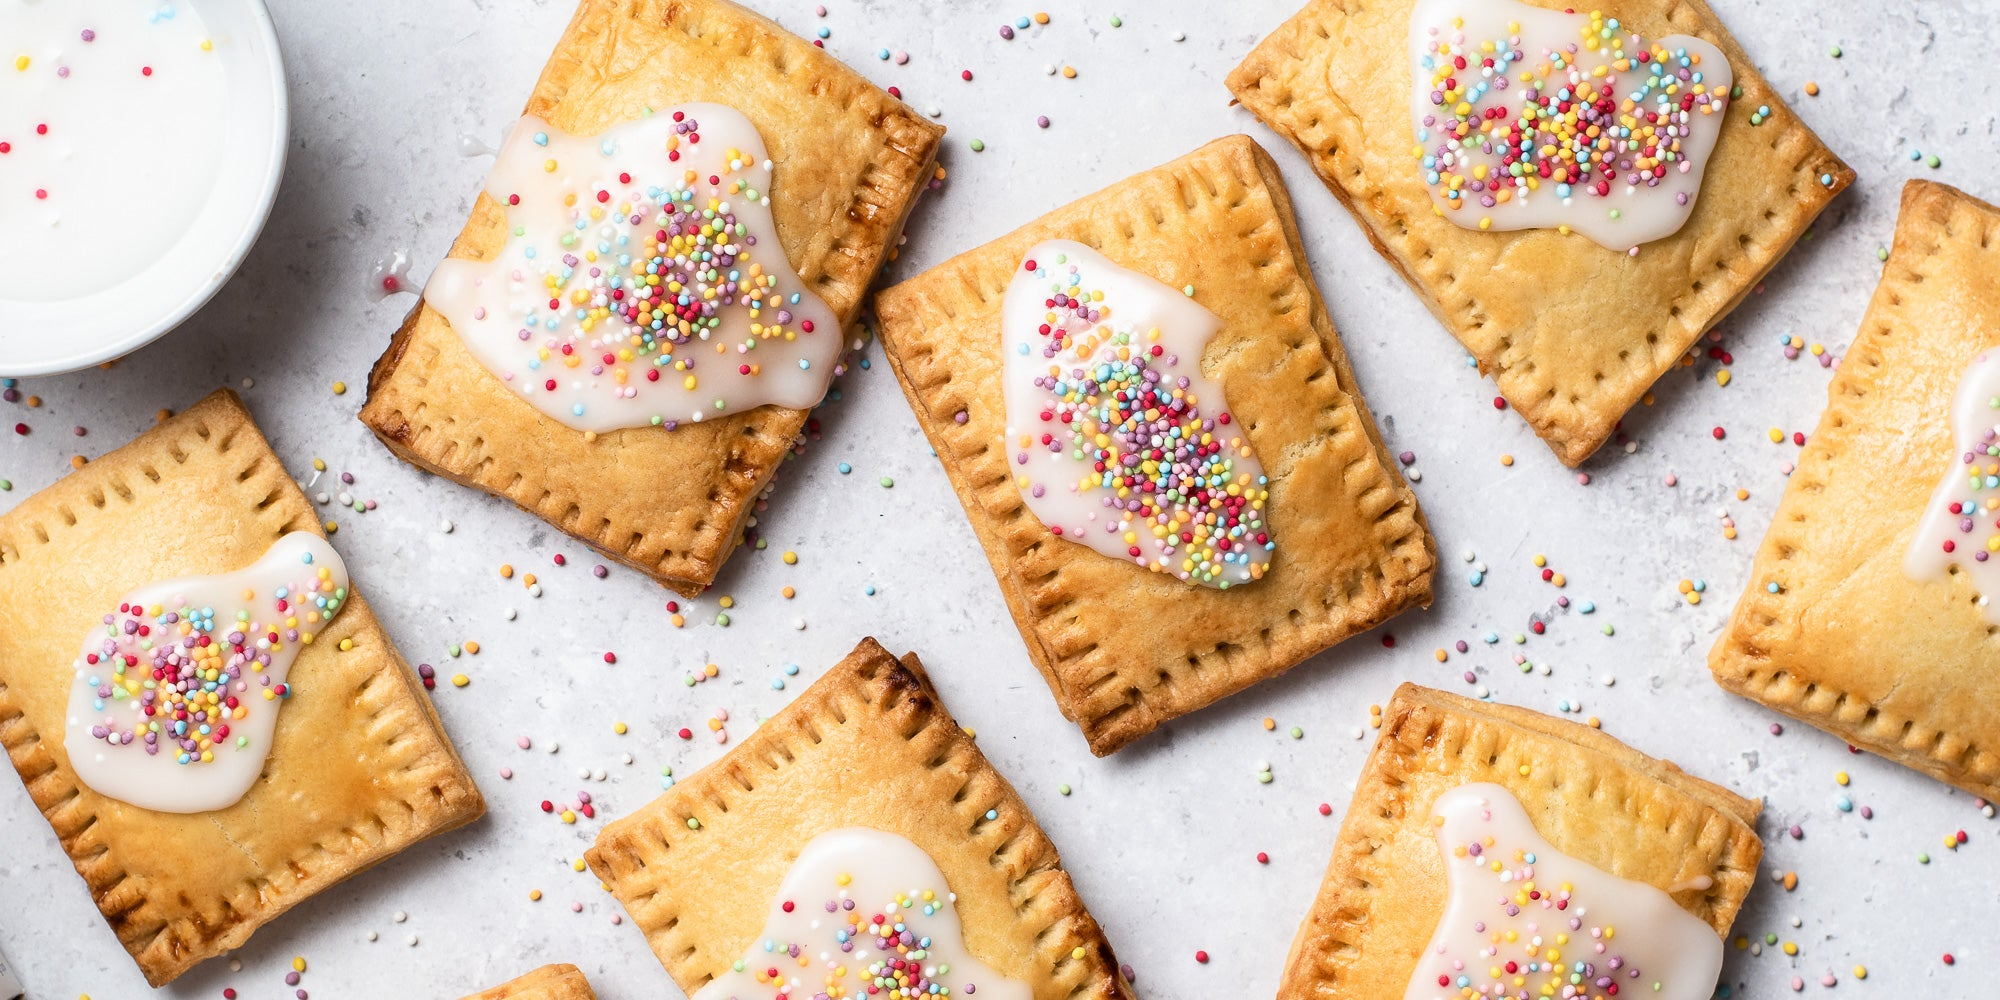 Homemade Pop Tarts with icing and sprinkles. Sprinkles scattered